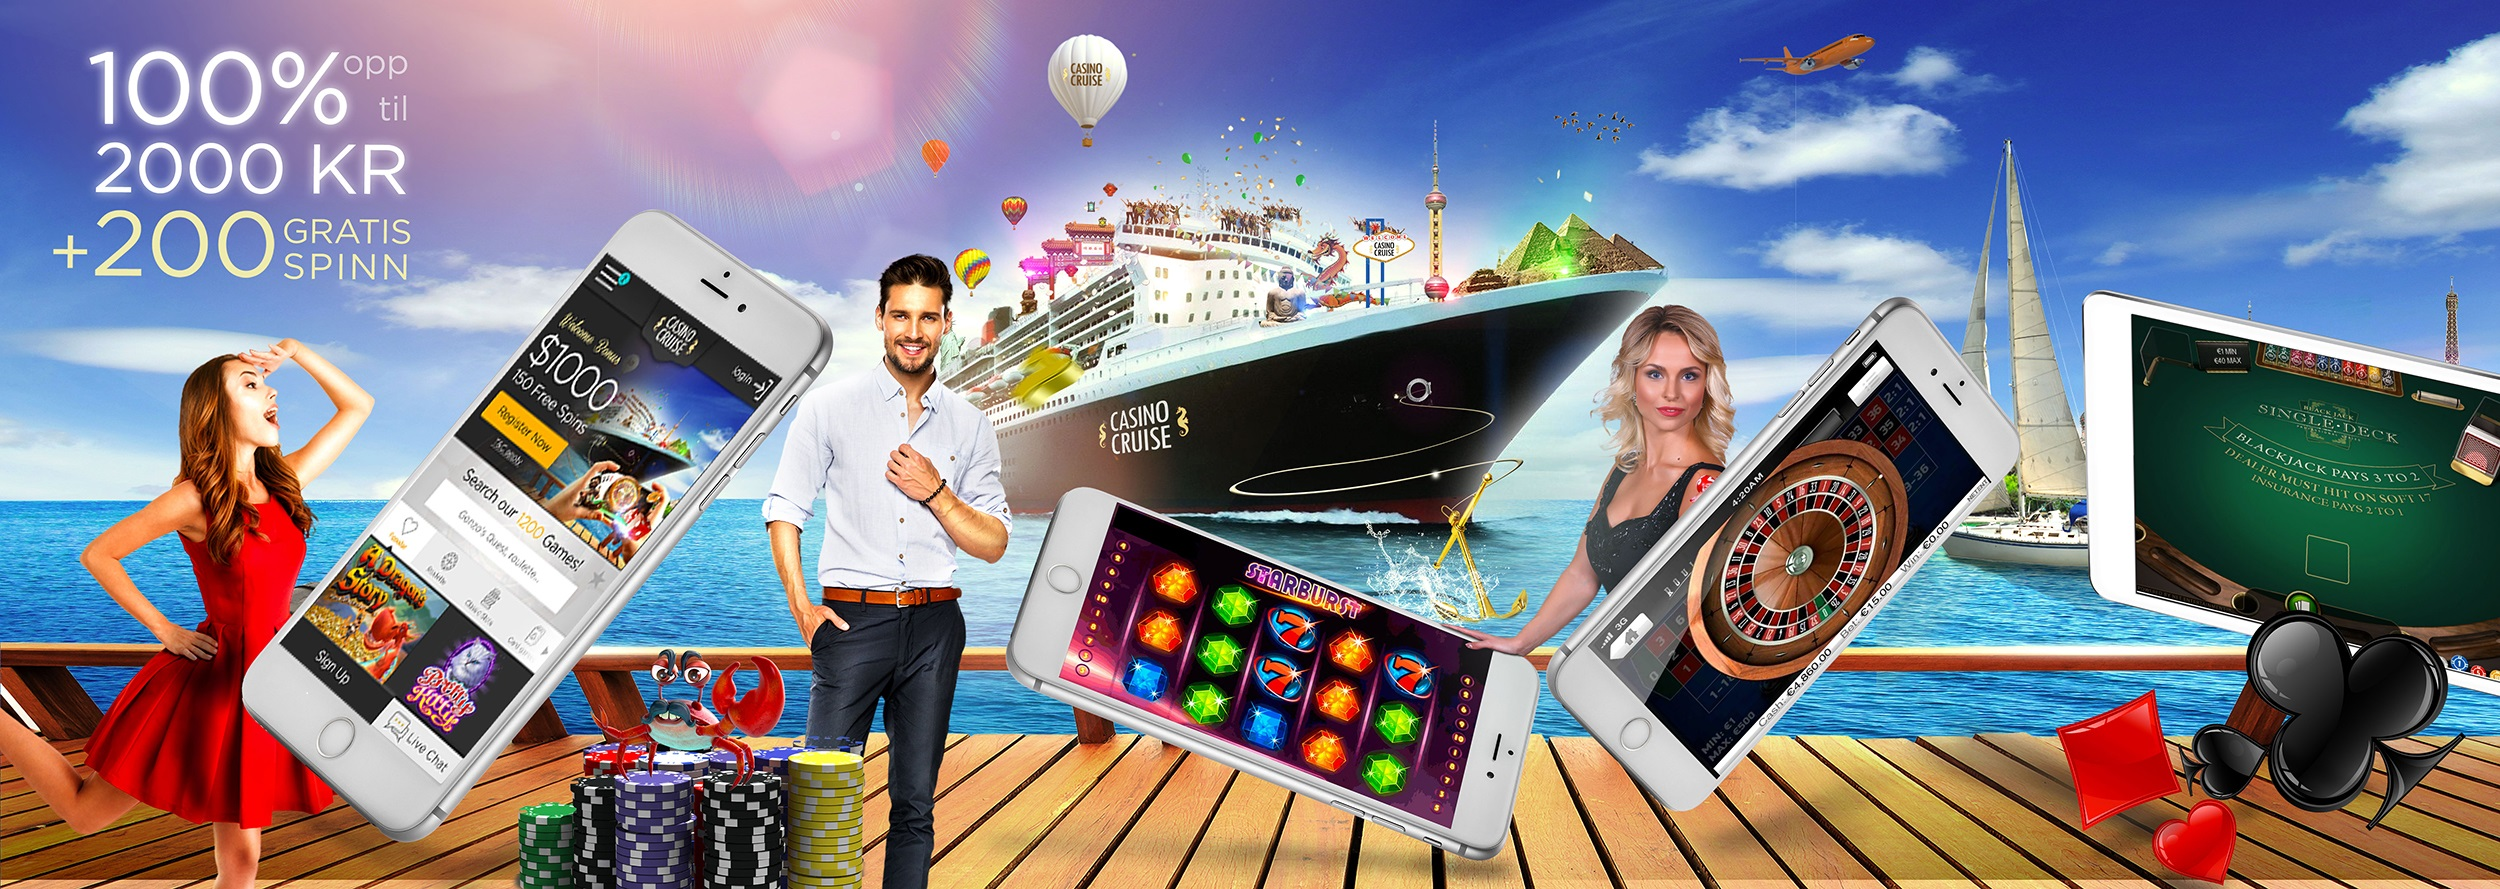 CasinoCruises casino-app